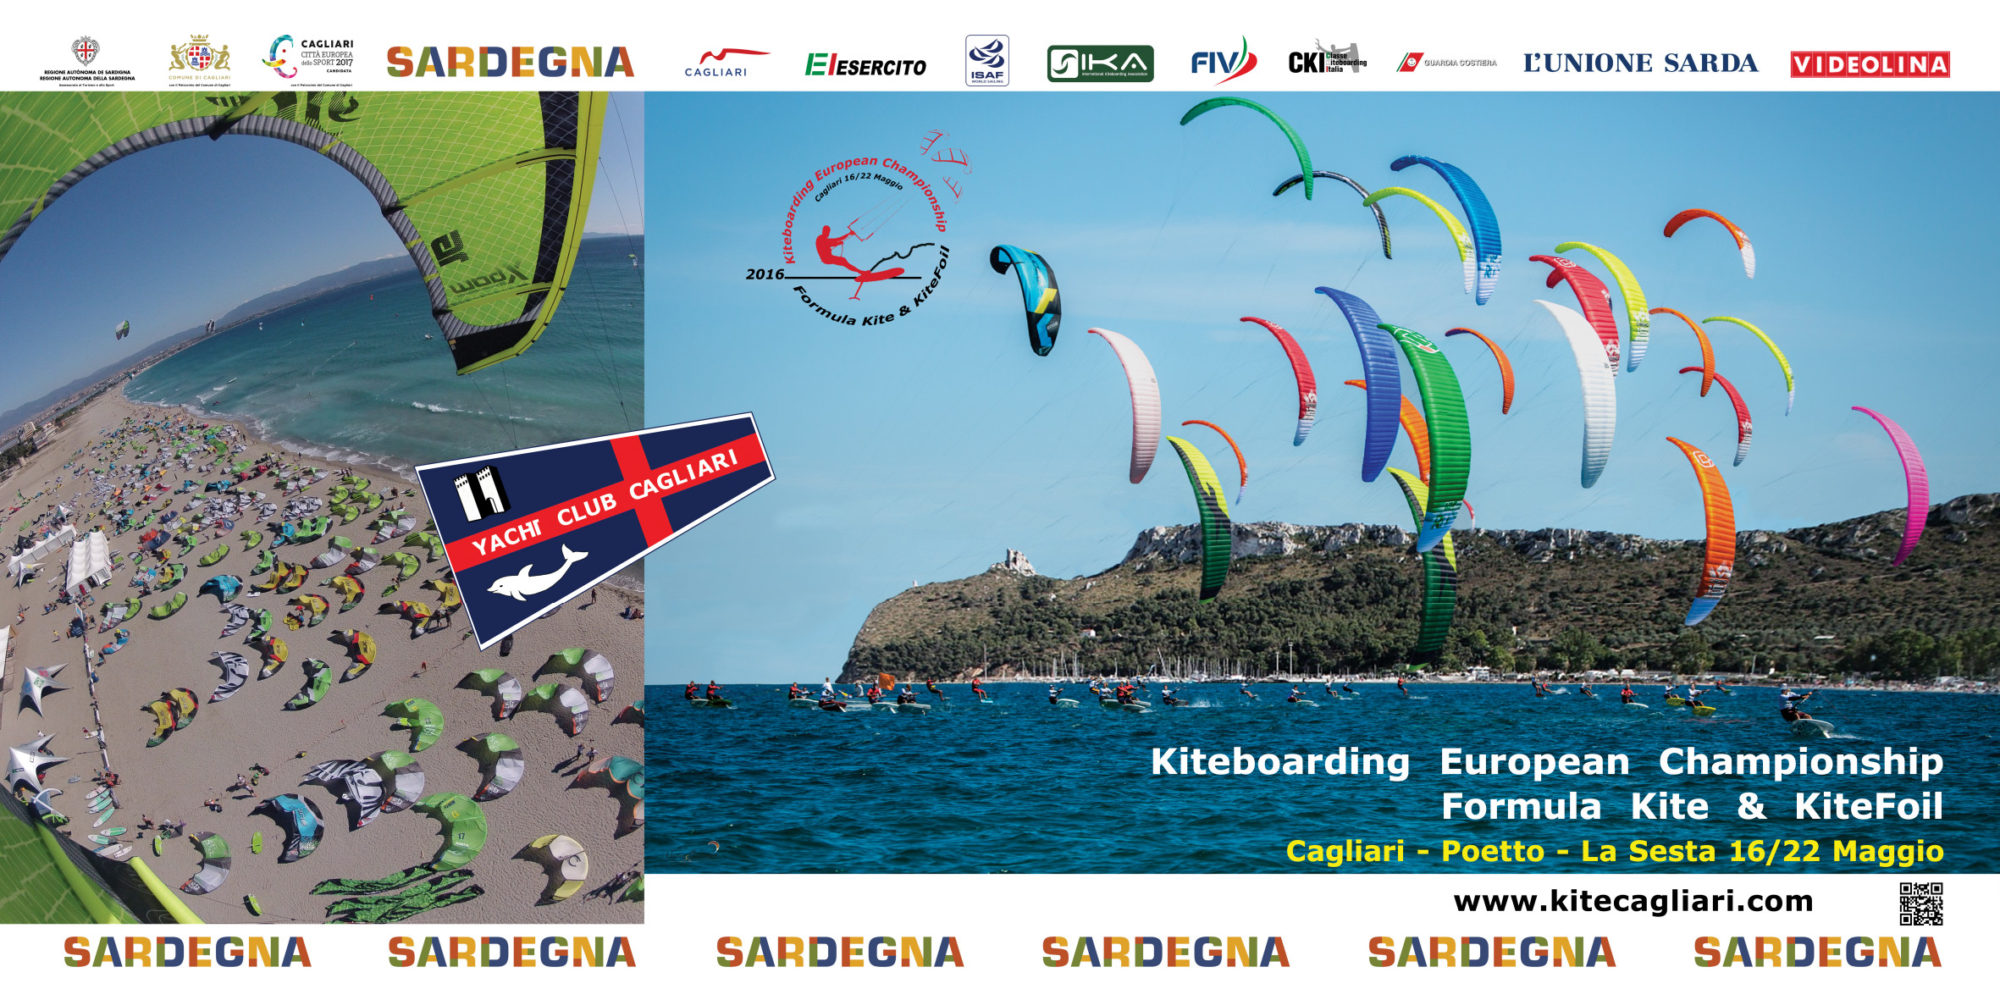 2016 Formula Kite and KiteFoil European Championships 2016 in Cagliari Sardinia